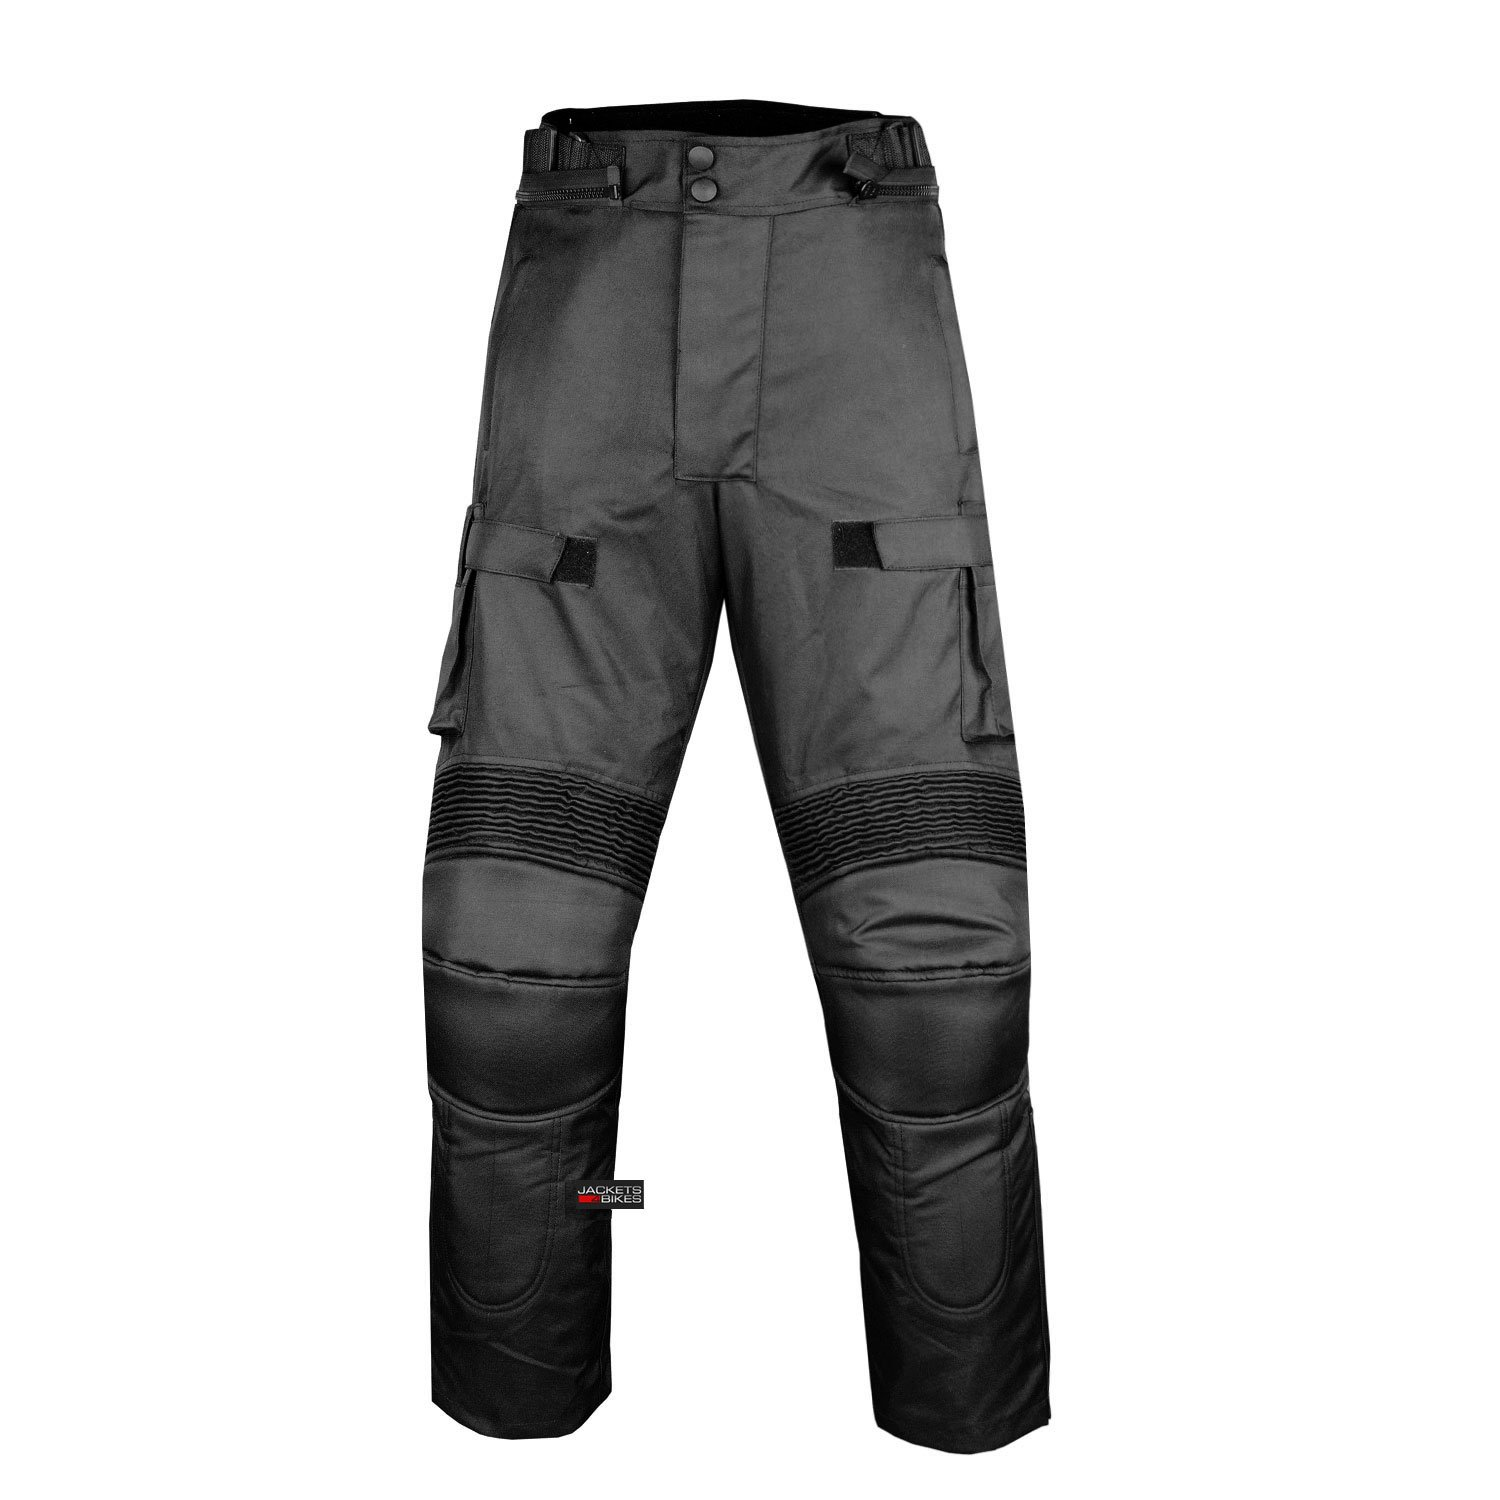 Motorcycle Textile Pants Waterproof Cruiser Touring Riding Armor Black 36w 30i